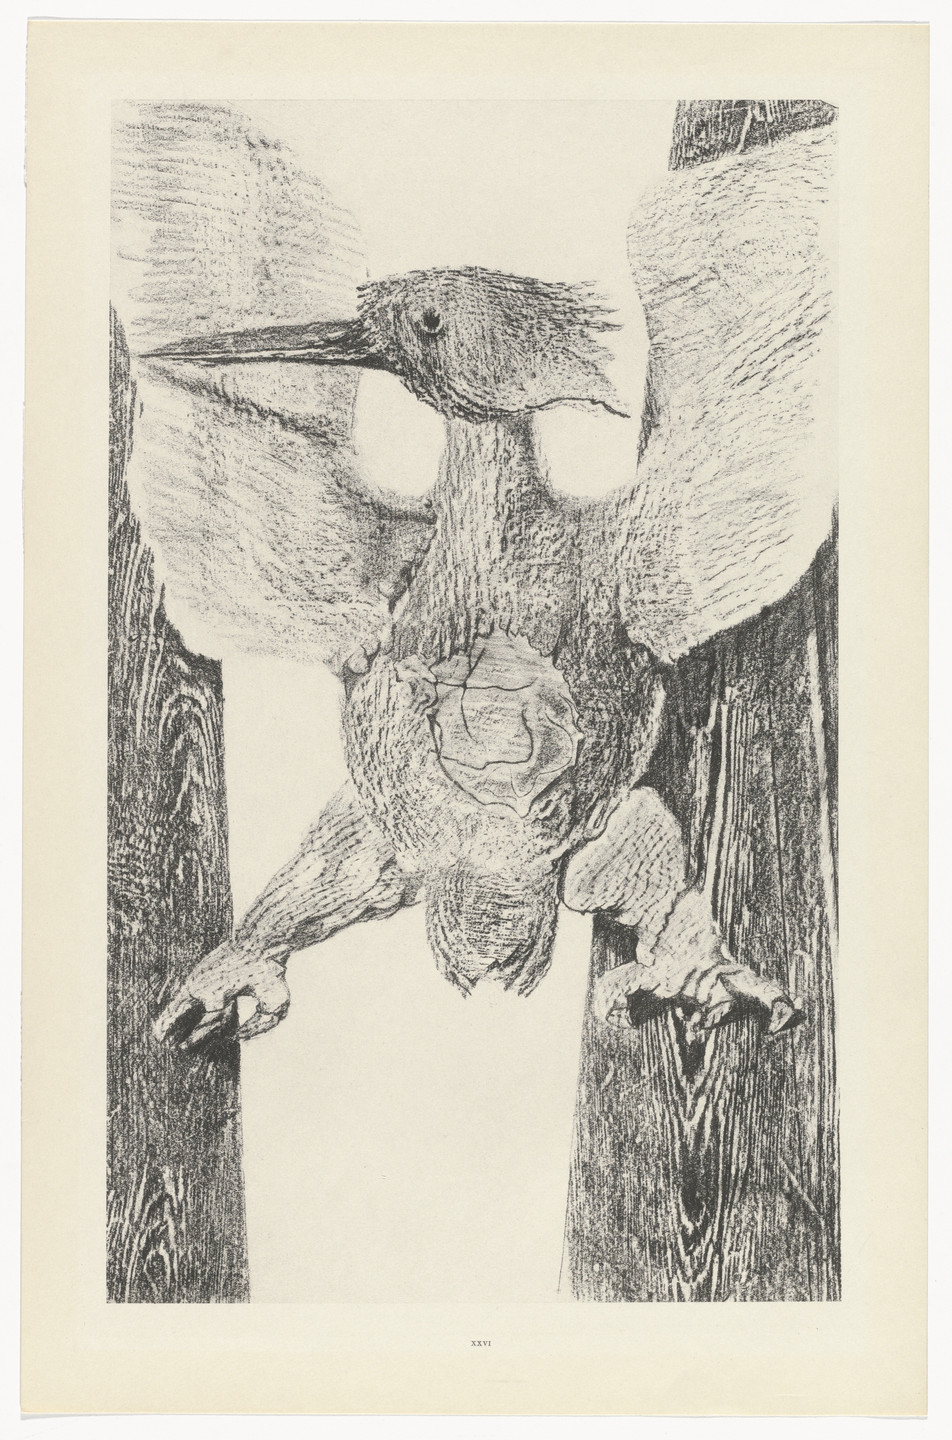 Max Ernst. The Origin of the Clock (L'Origine de la pendule) from Natural History (Histoire naturelle). c. 1925, published 1926